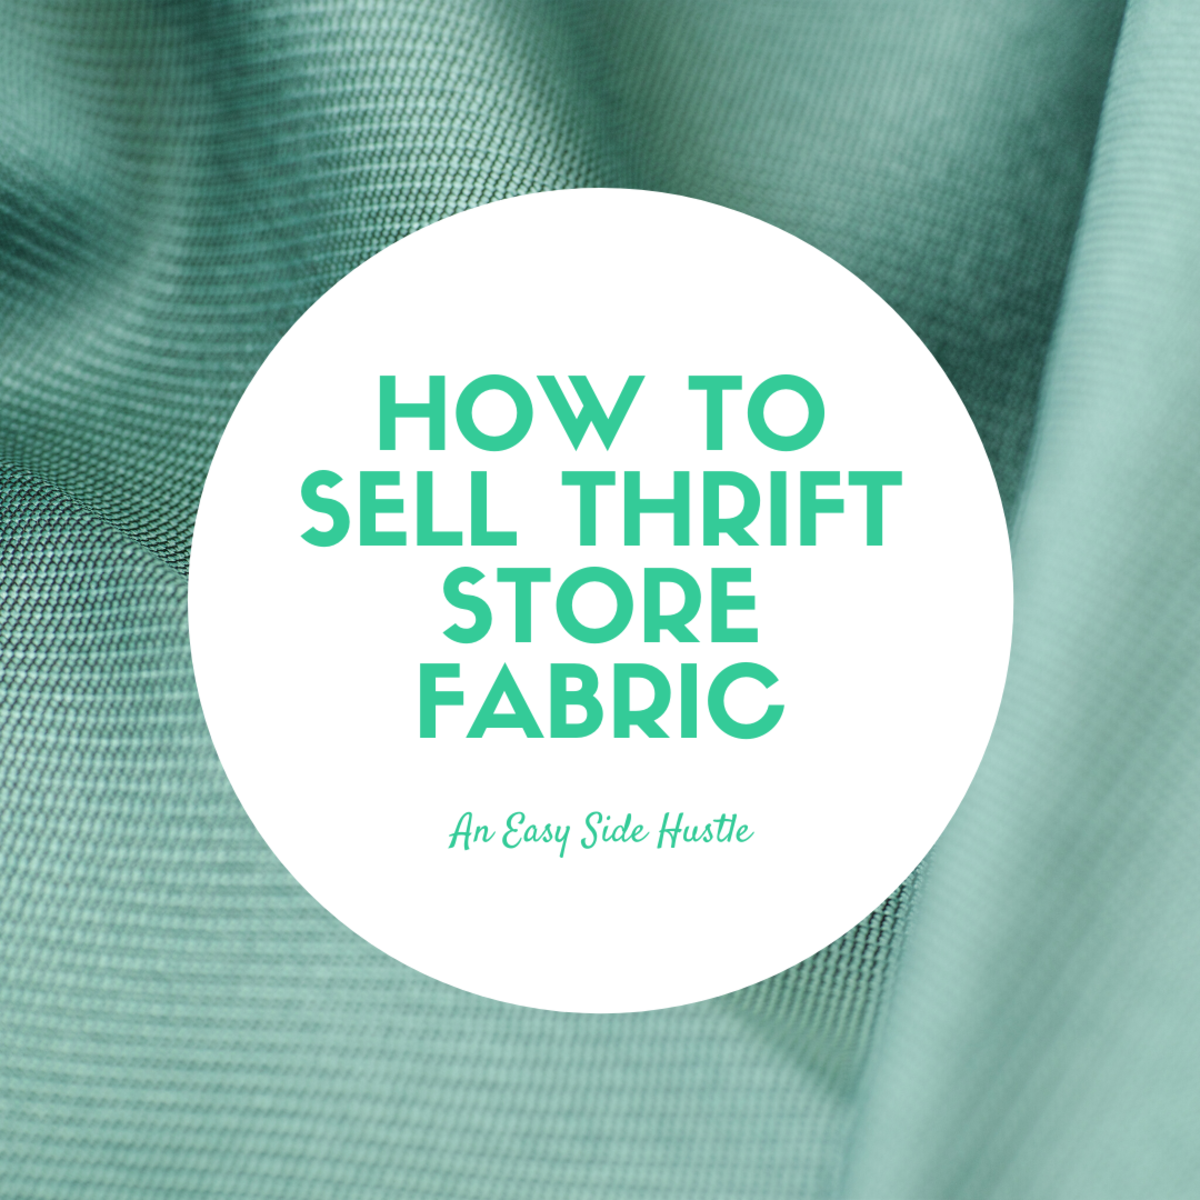 How to Sell Thrift Store Fabric for Profit: An Easy Side Hustle